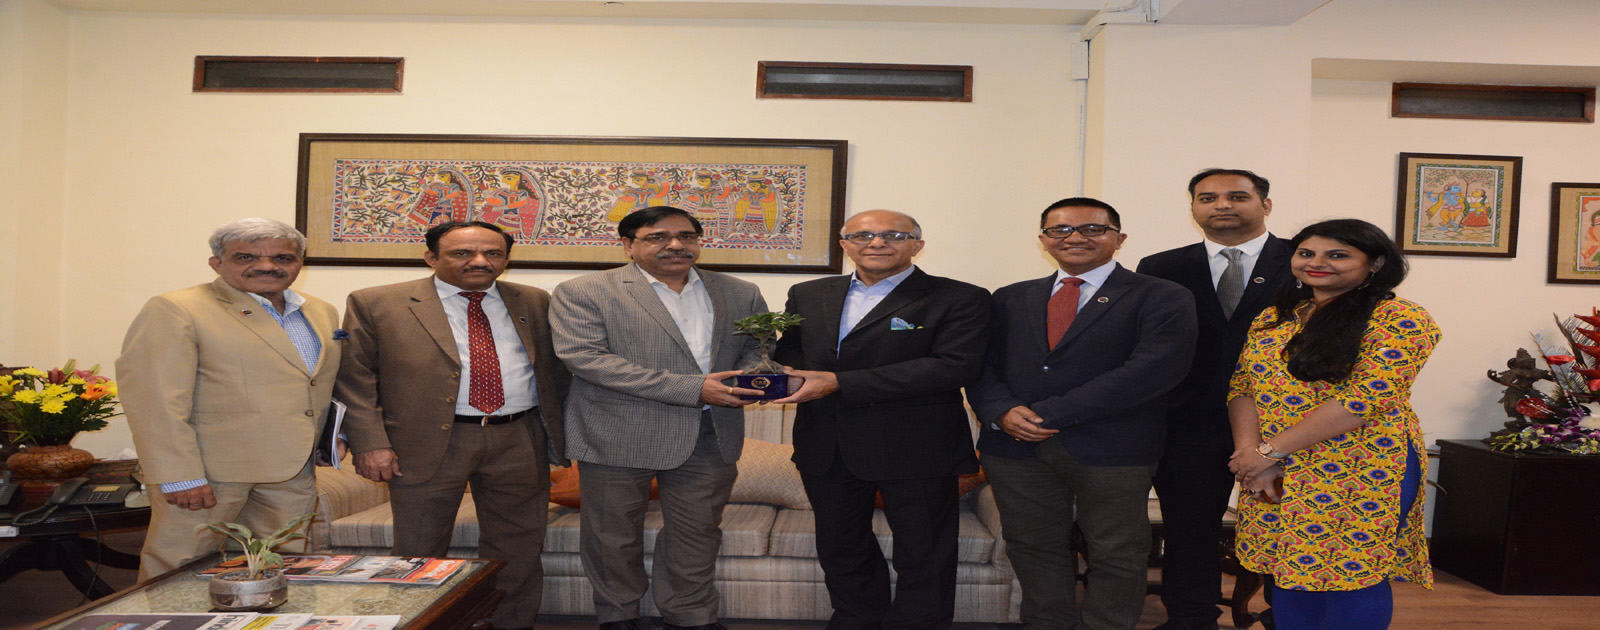 Call on Meeting with Shri Yogendra Tripathi (IAS),  Secretary, Ministry of Tourism, Government of India